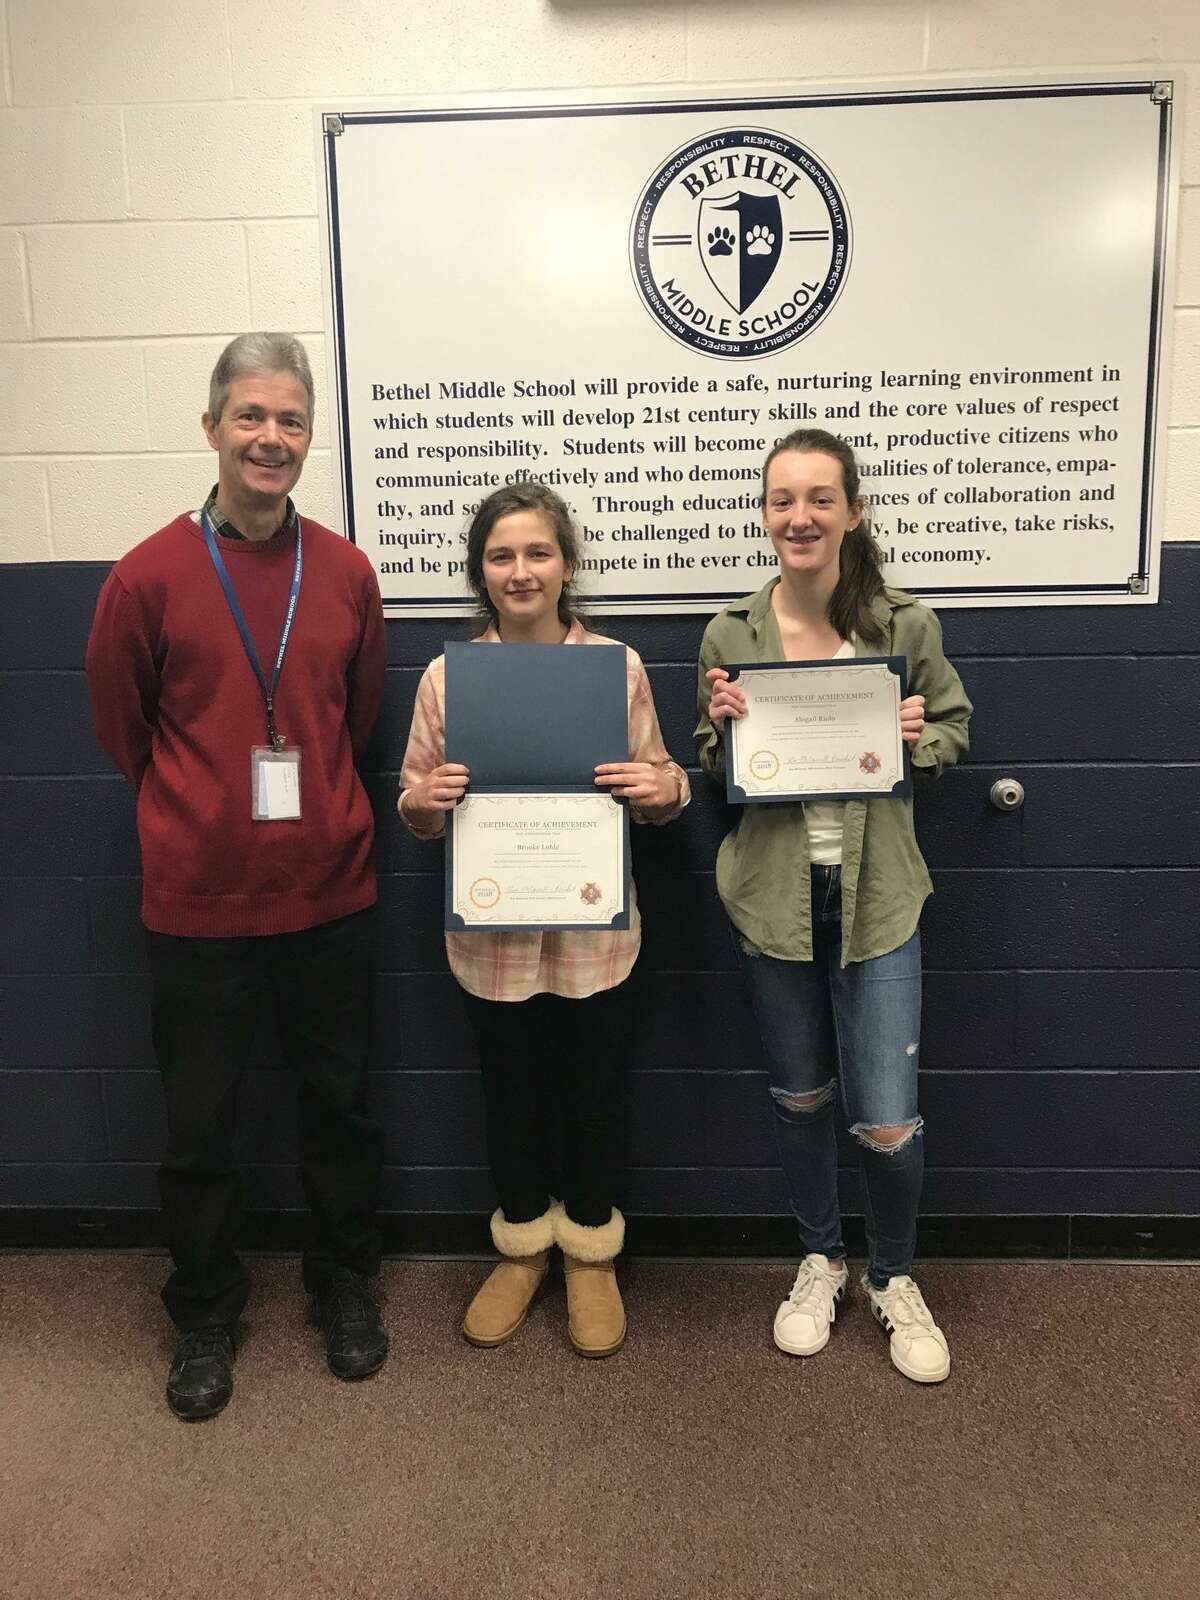 Bethel Middle School students Abigail Riolo, right, and Brooke Lohle, center, with their teacher, Tom Salvador, left. Riolo earned first place and Lohle earned second place at the local level of the Bethel VFW Post 935 and the District 1 level for the Patriot's Pen essay contest. Riolo went on to earn an honorable mention at the state level.